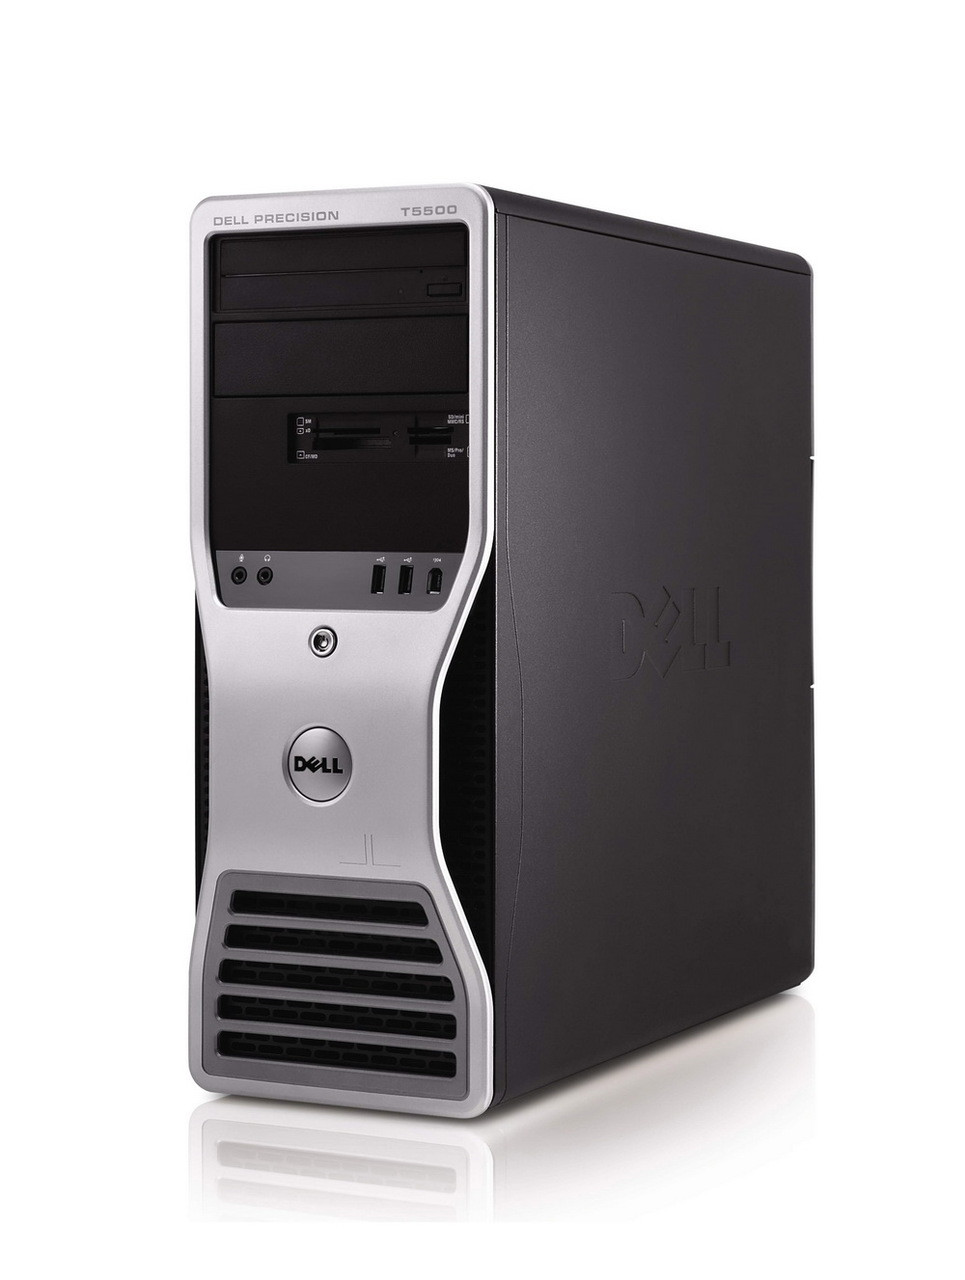 Dell Precision T7500 - Front view (right)